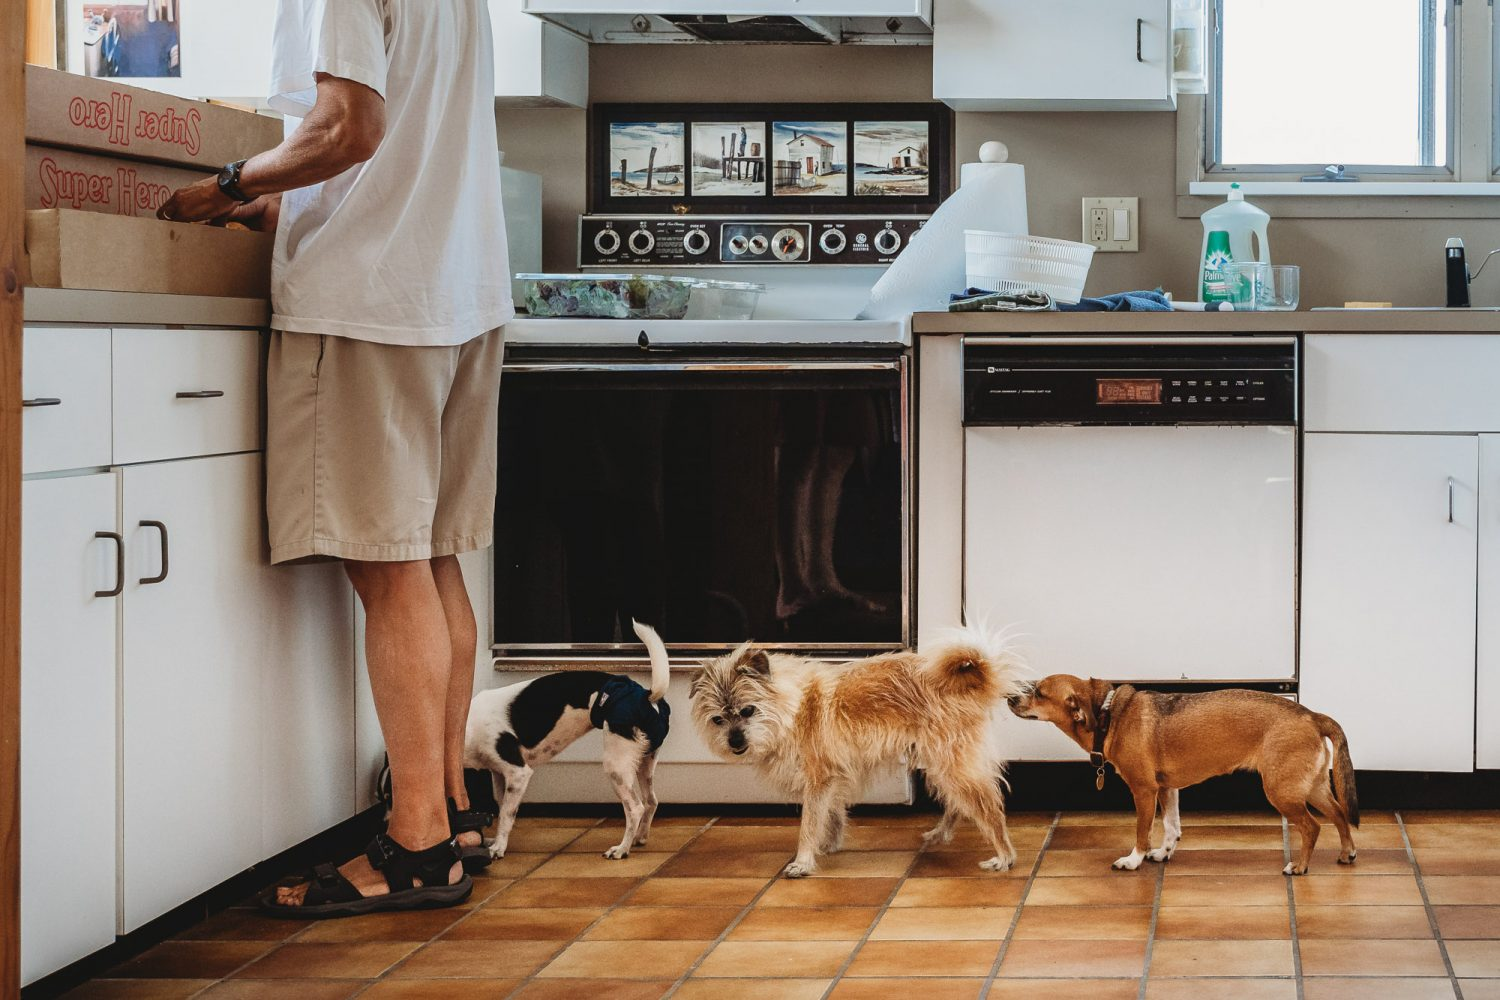 Documentary family photography: Three dogs sniff each others' butts. Fire Island, NY.